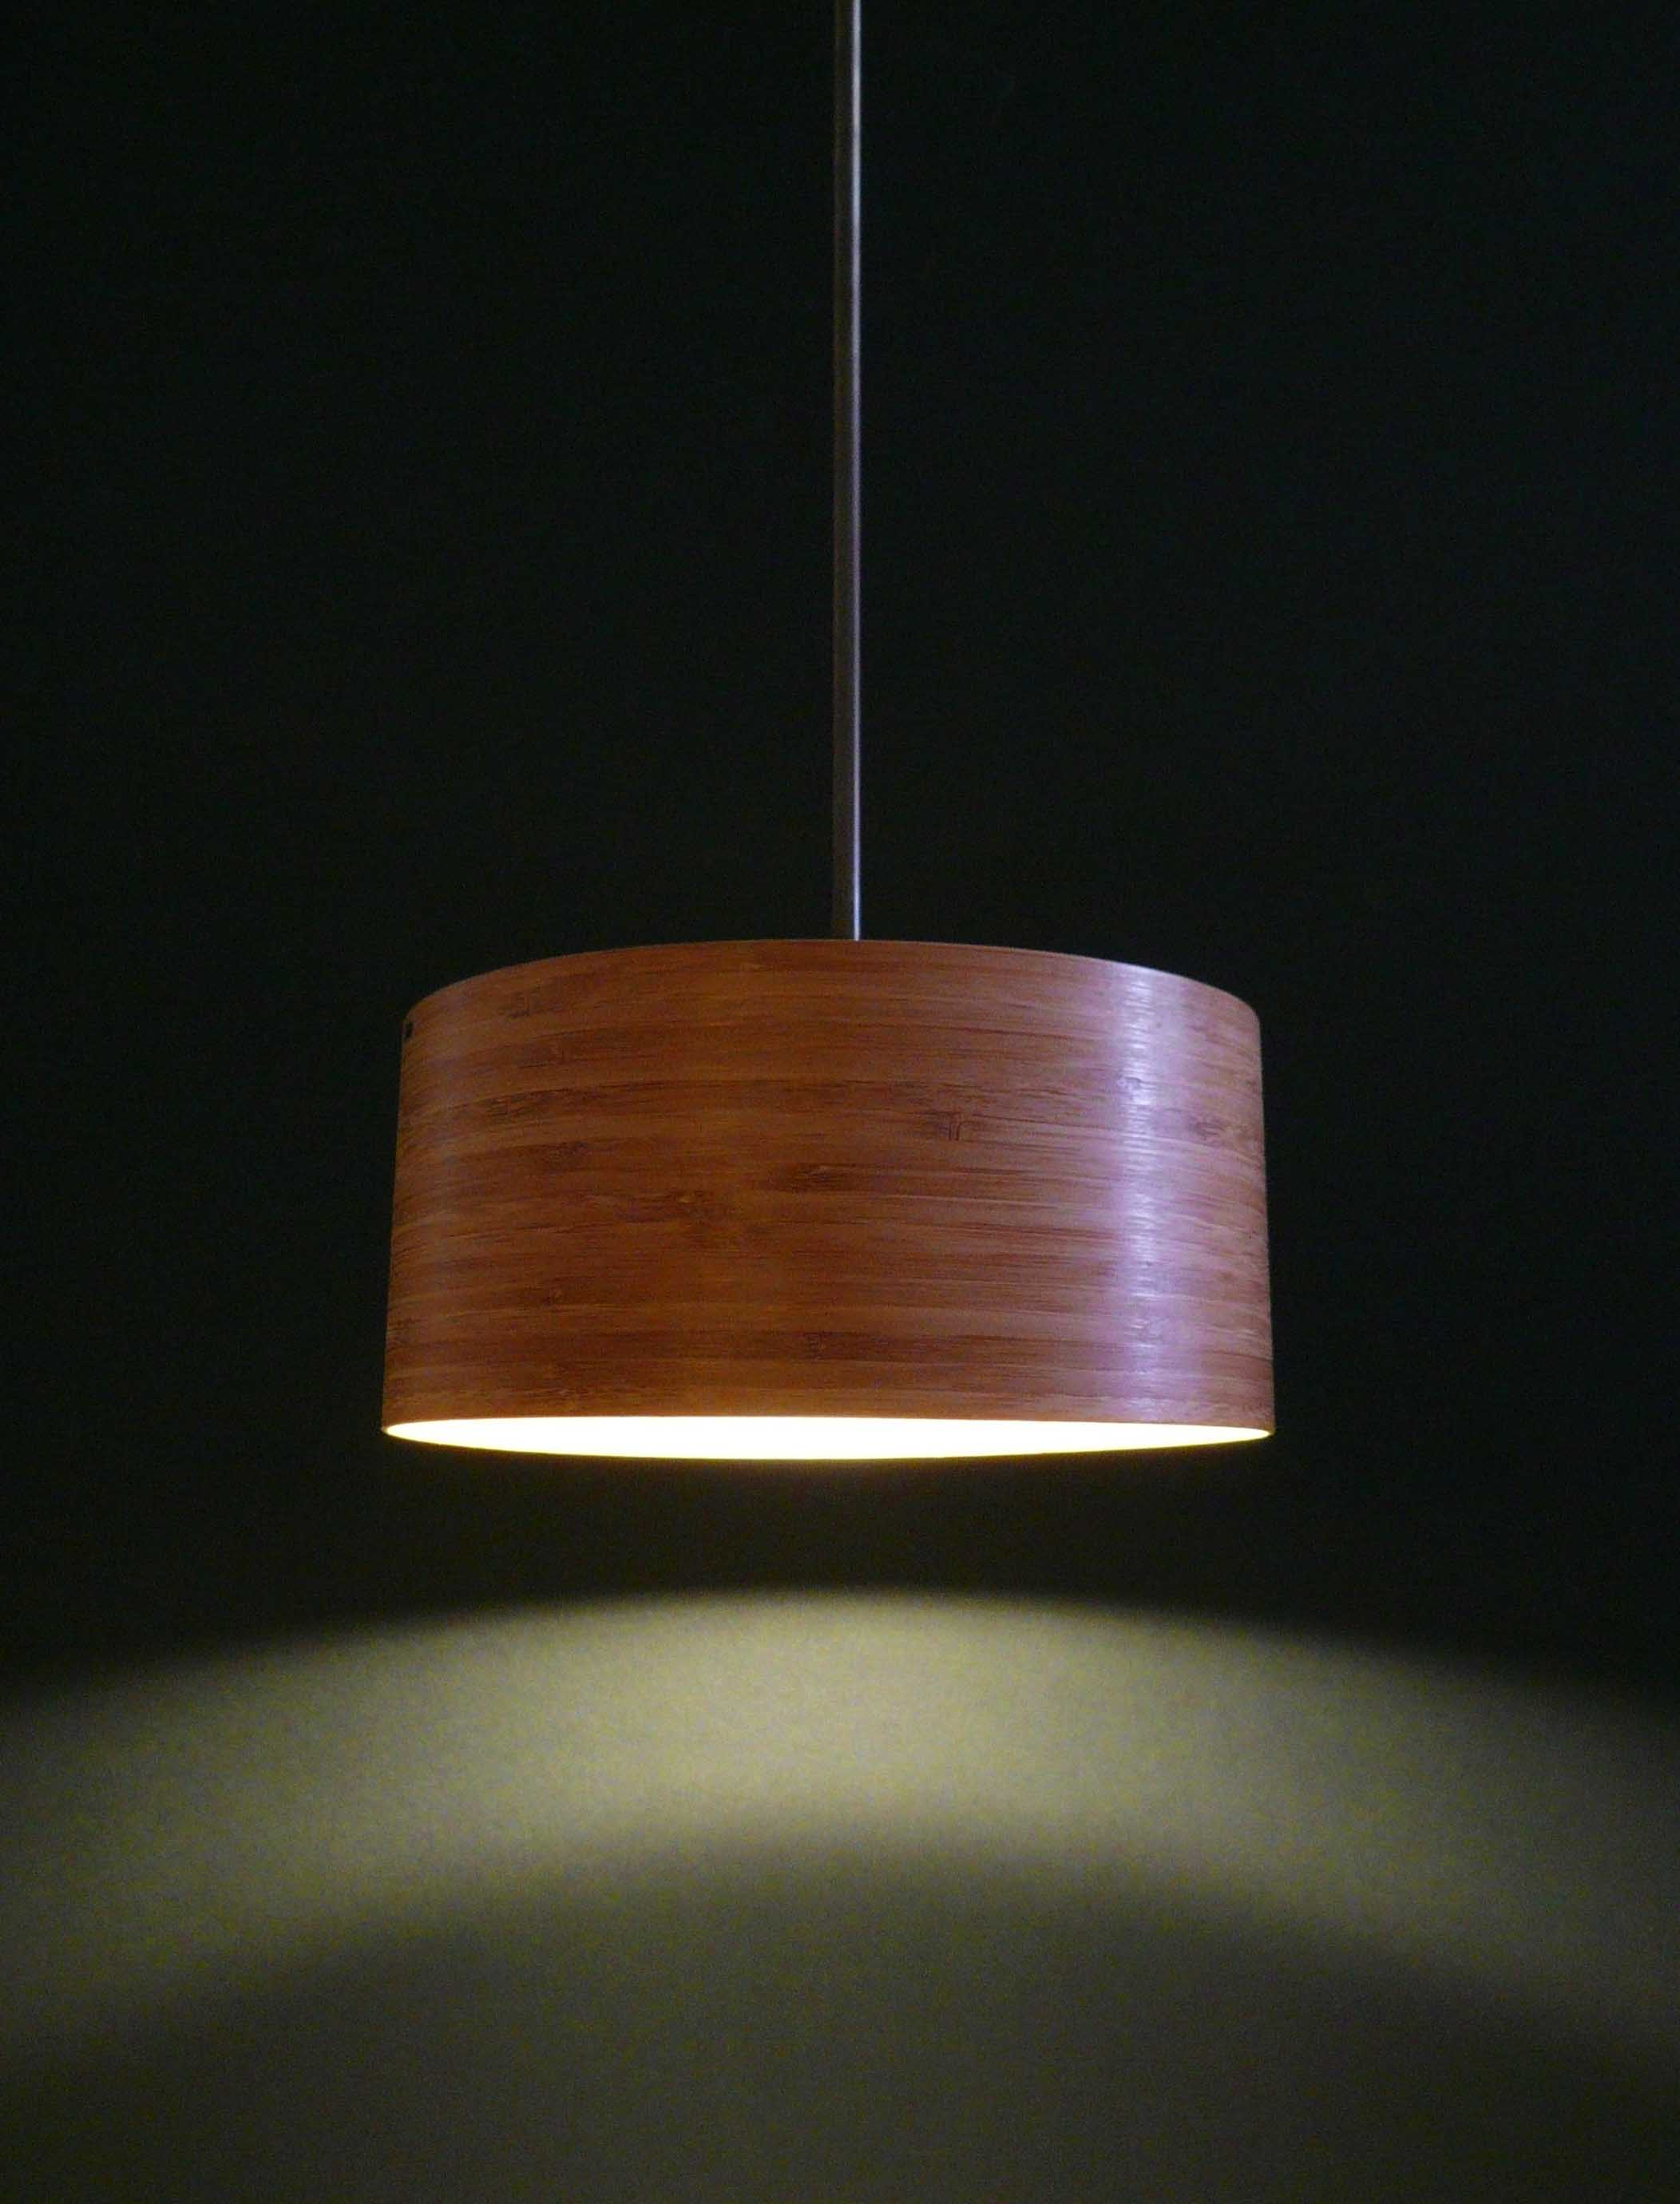 jeremy pickett of pickett furniture has long been a favorite designer of ours and he now has some fantastic and affordable and eco friendly bamboo pendant bamboo pendant lighting